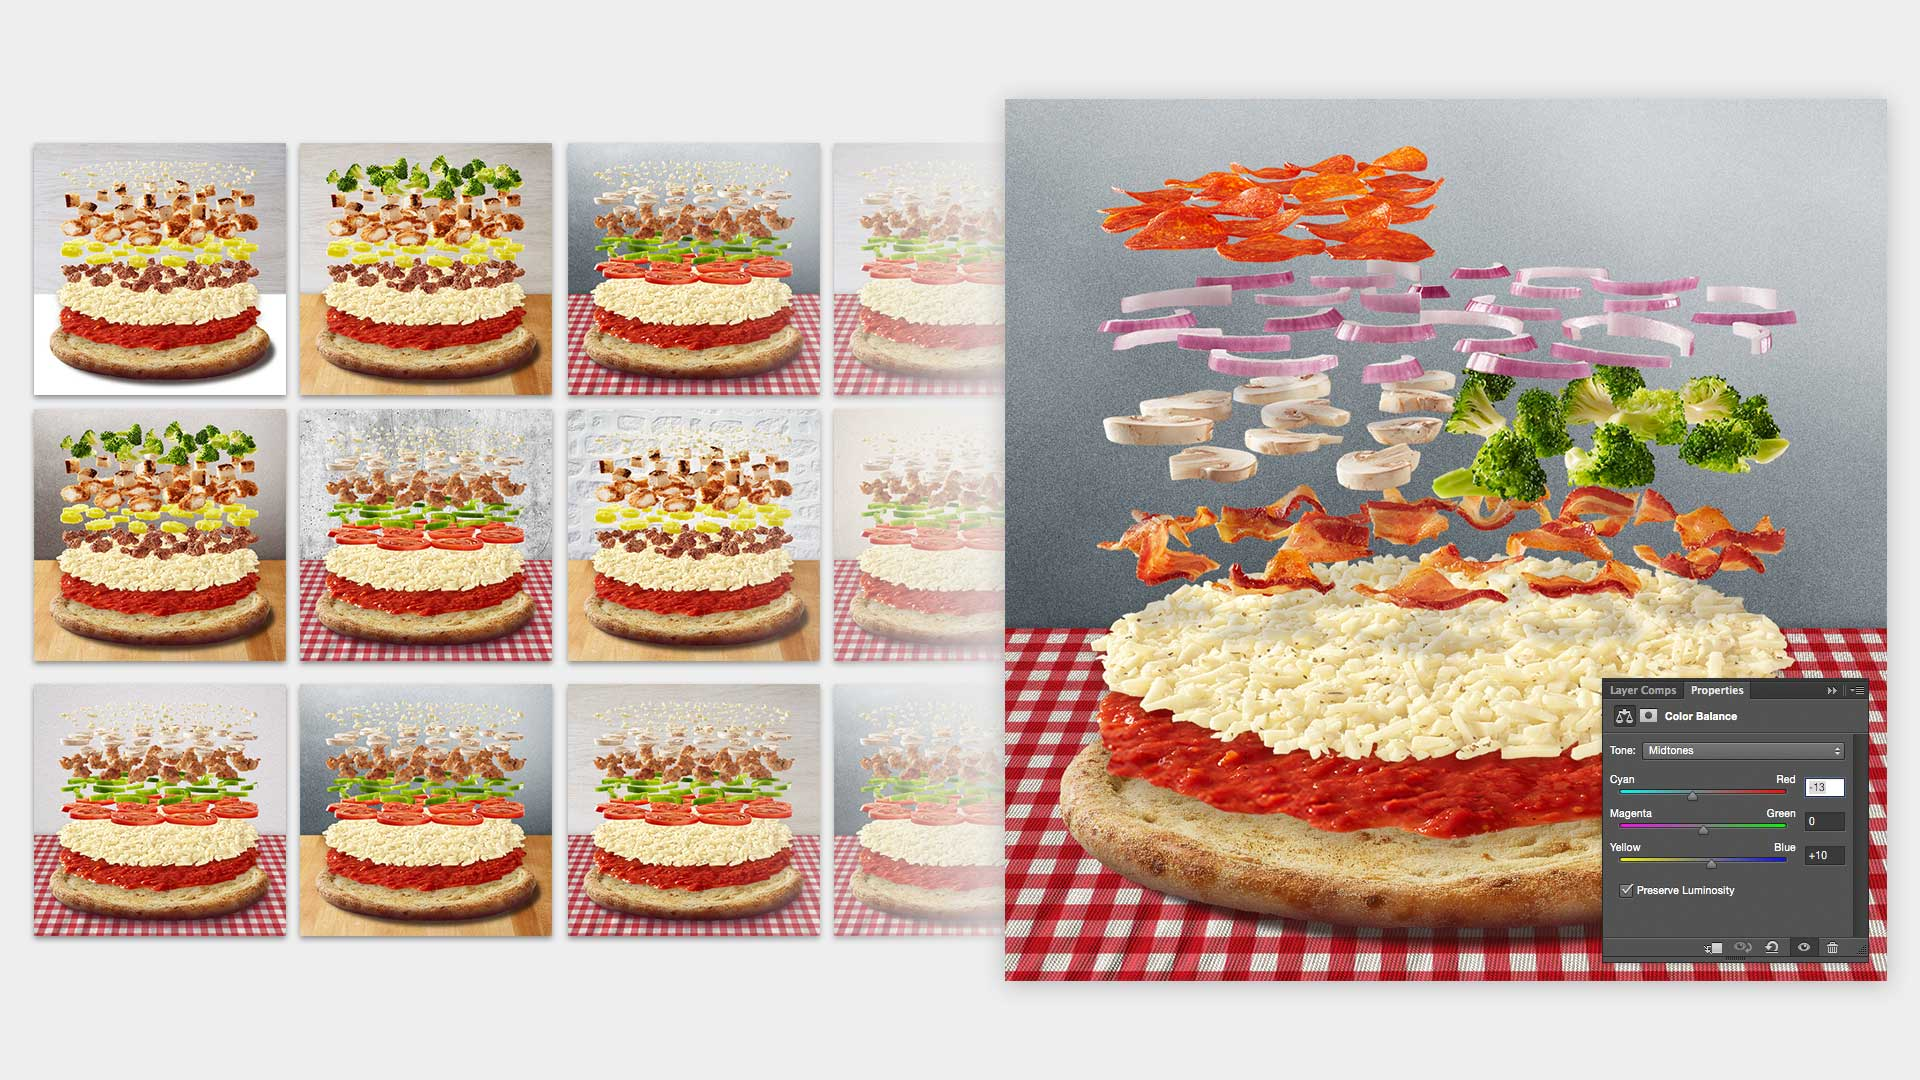 Optimizing the background texture and color balance for the full range of possible toppings.